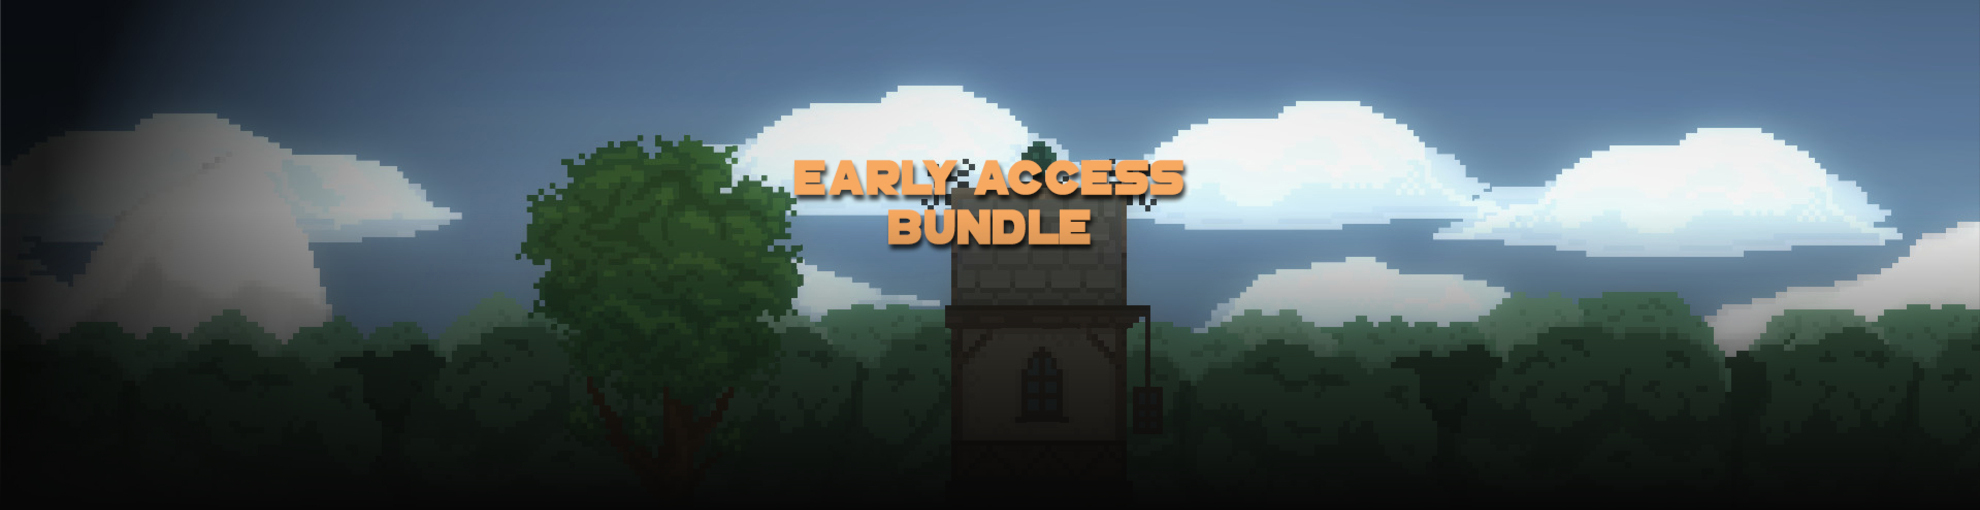 EARLYaccess.jpg